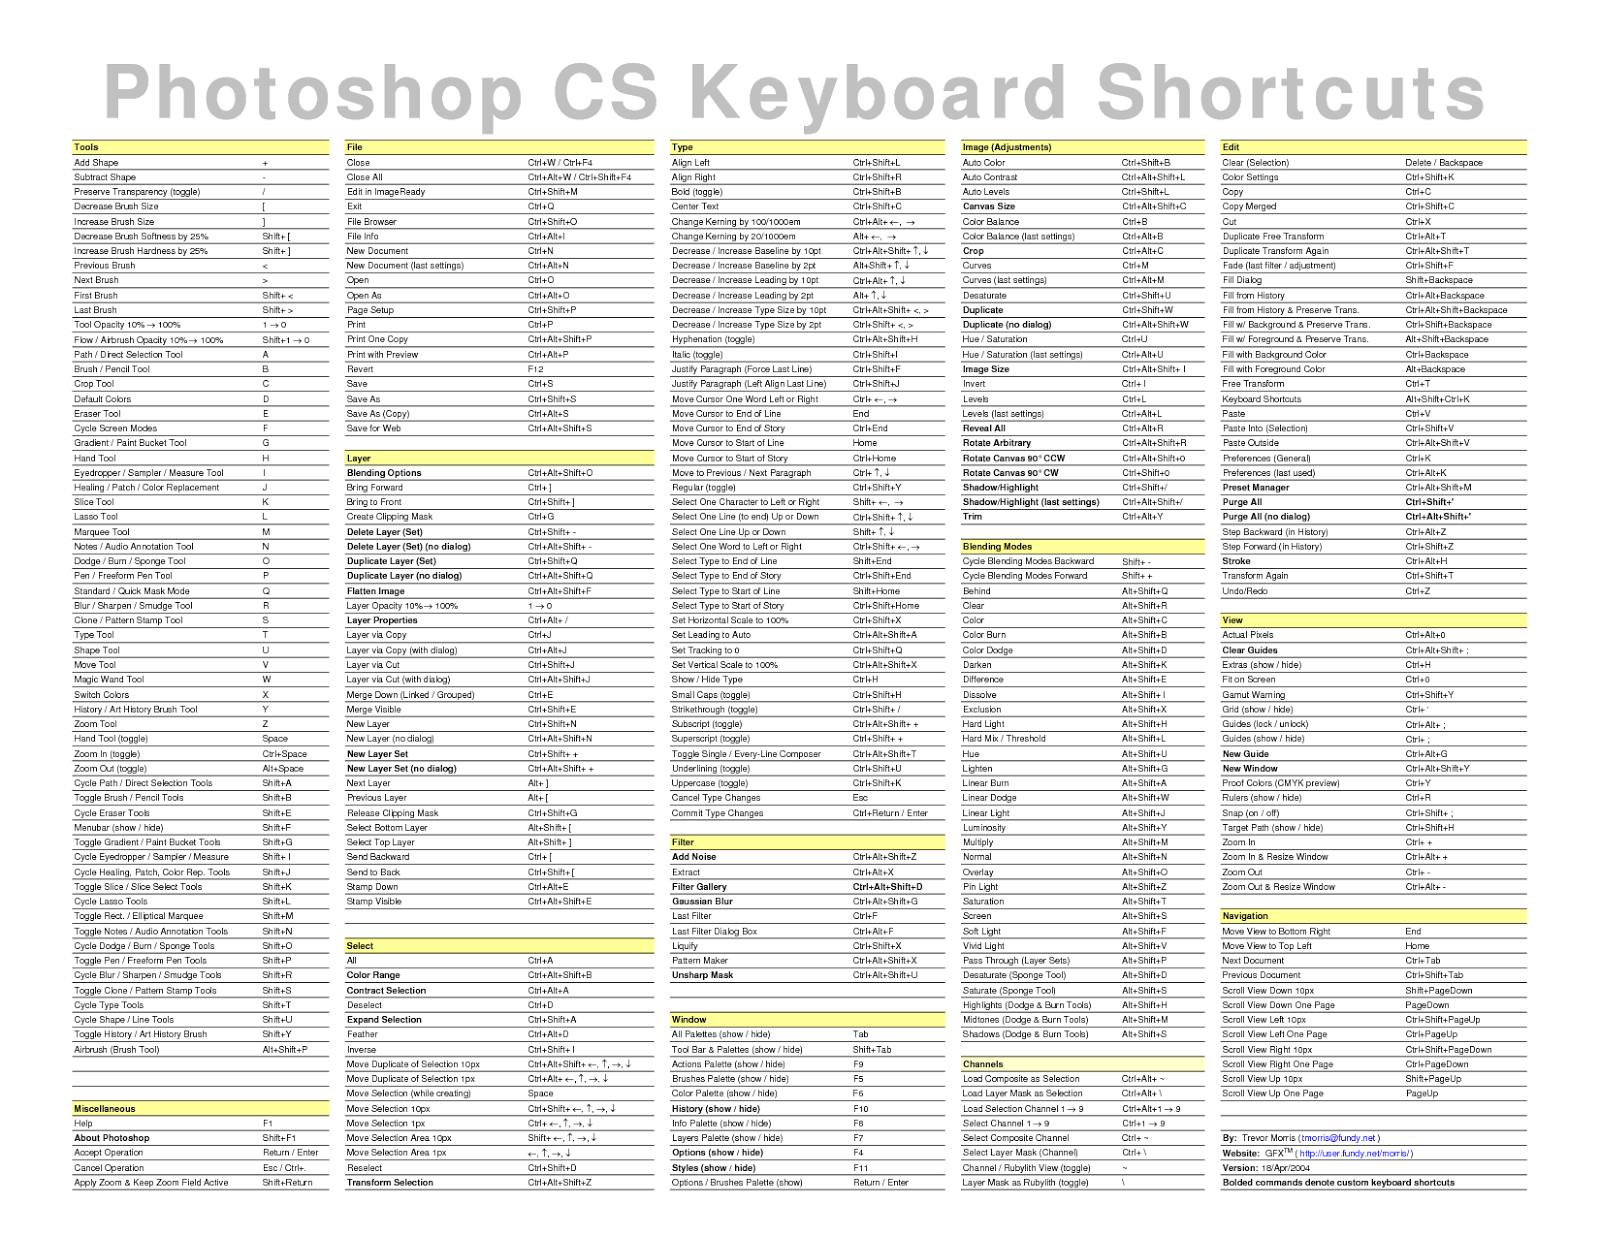 Photoshop CS6 All-in-One For Dummies Cheat Sheet